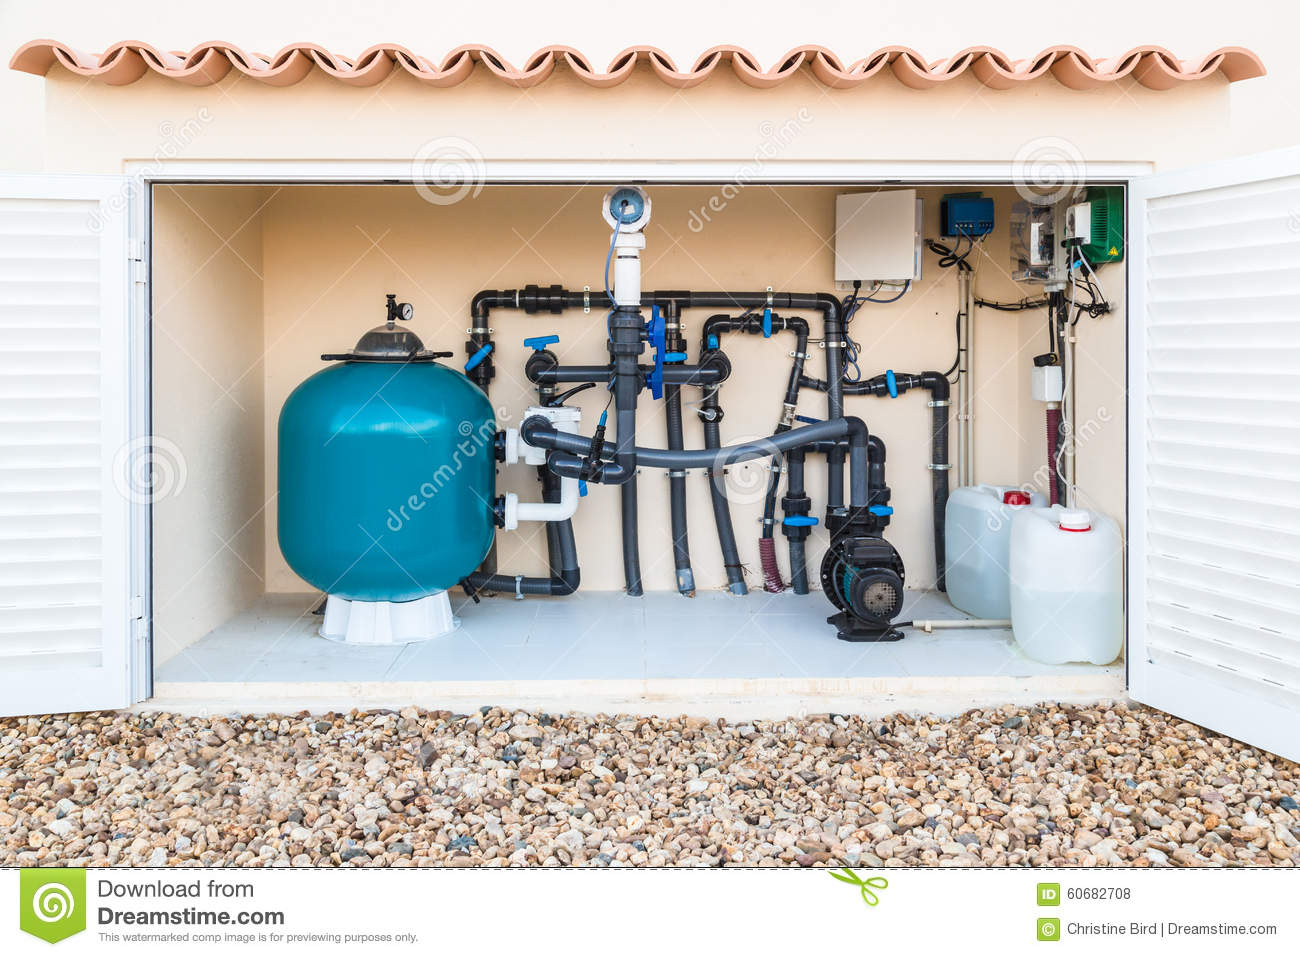 Brine Salt Water Swimming Pool Filter And Pumps Stock Photo Image 60682708